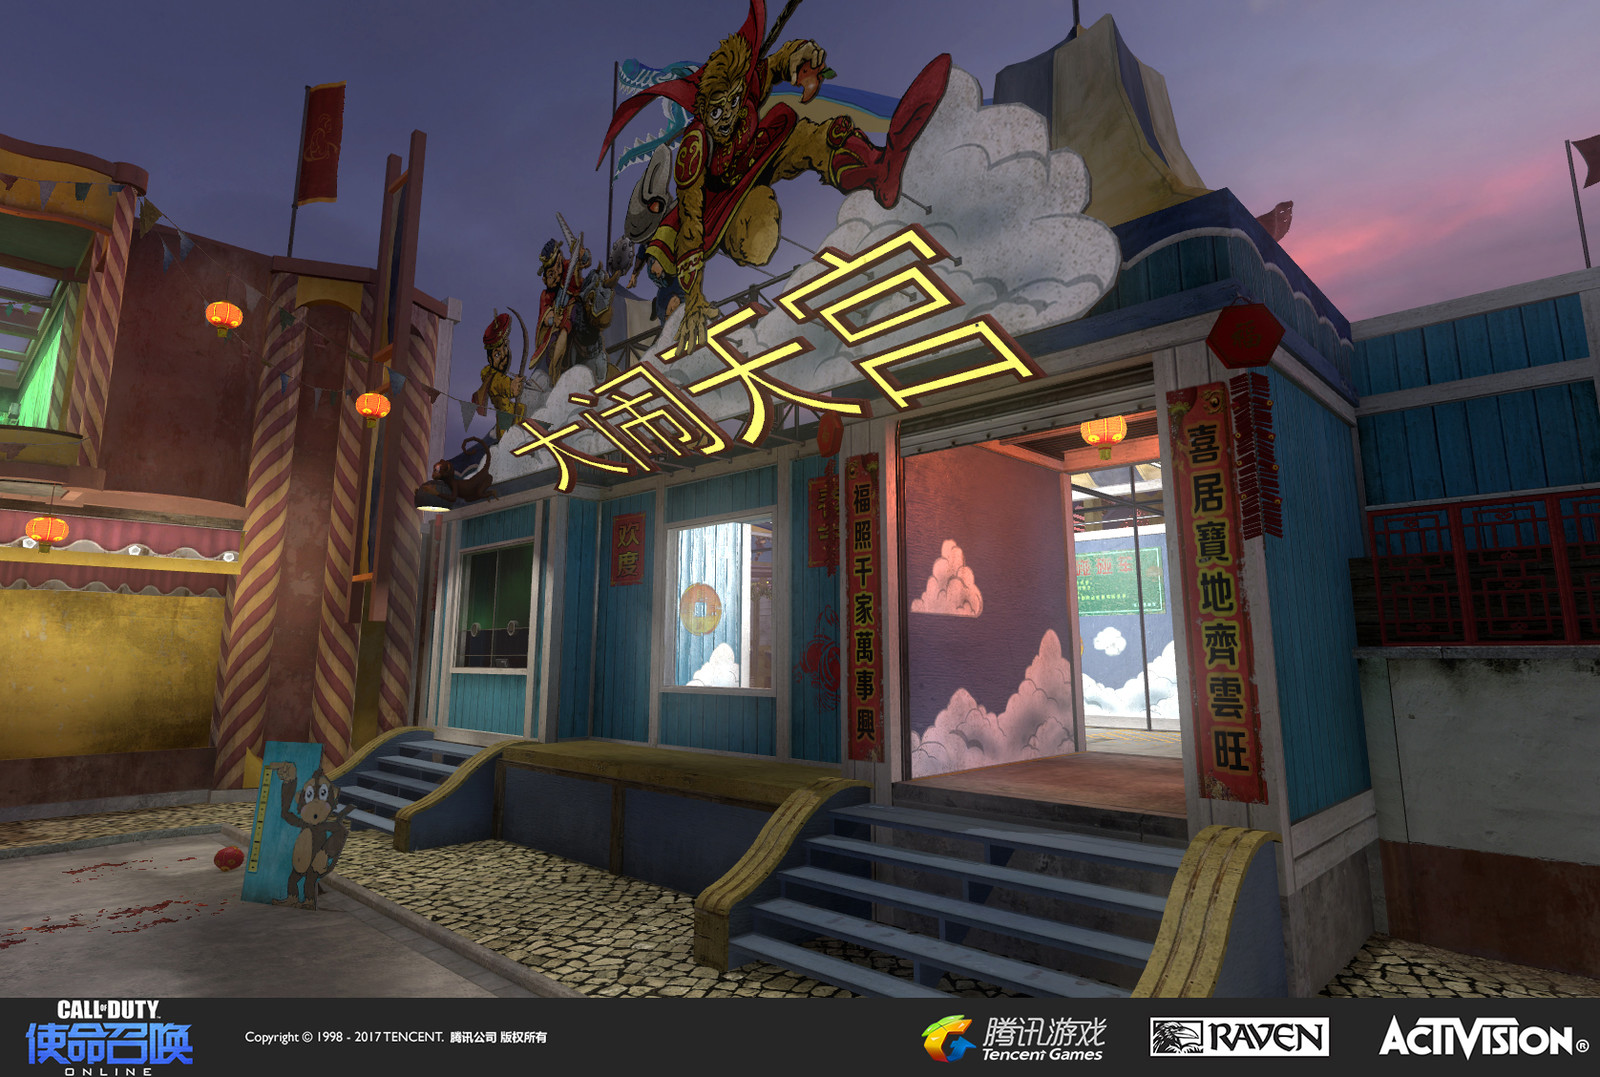 Carnival: I created the geo, texturing, set dress, and sign models for the roller coaster station of this map. The characters are my drawings and are animated to raise and lower.